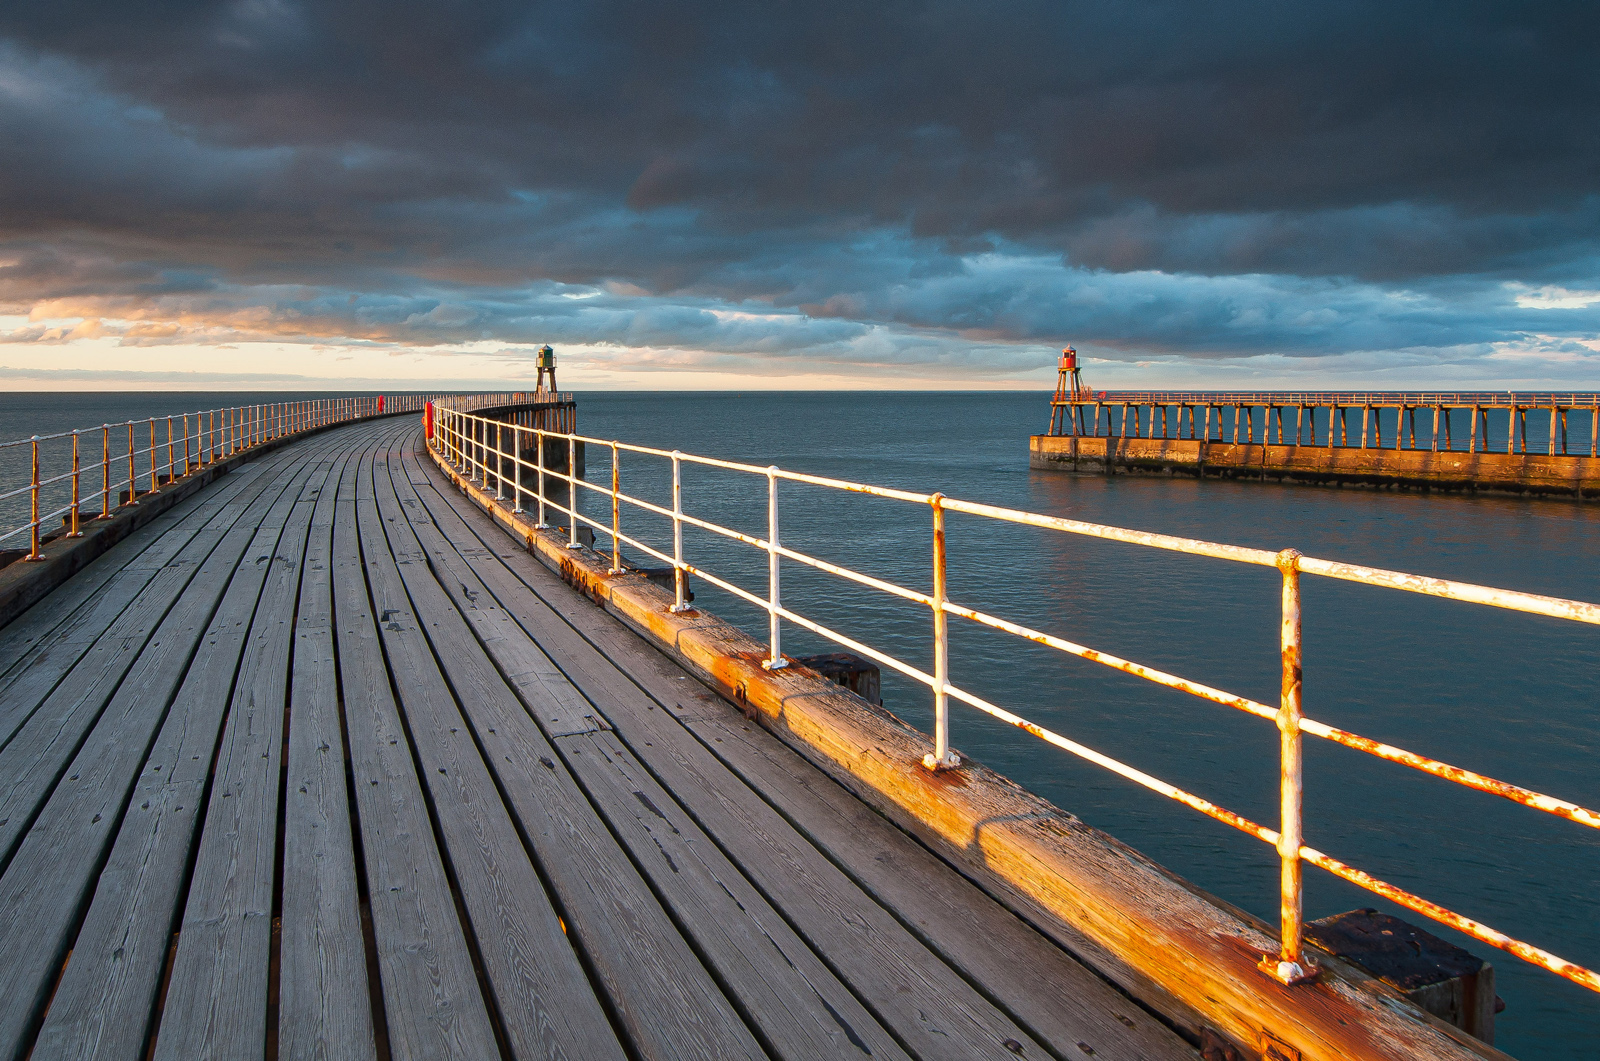 8. whitby pier sunset.nick webster